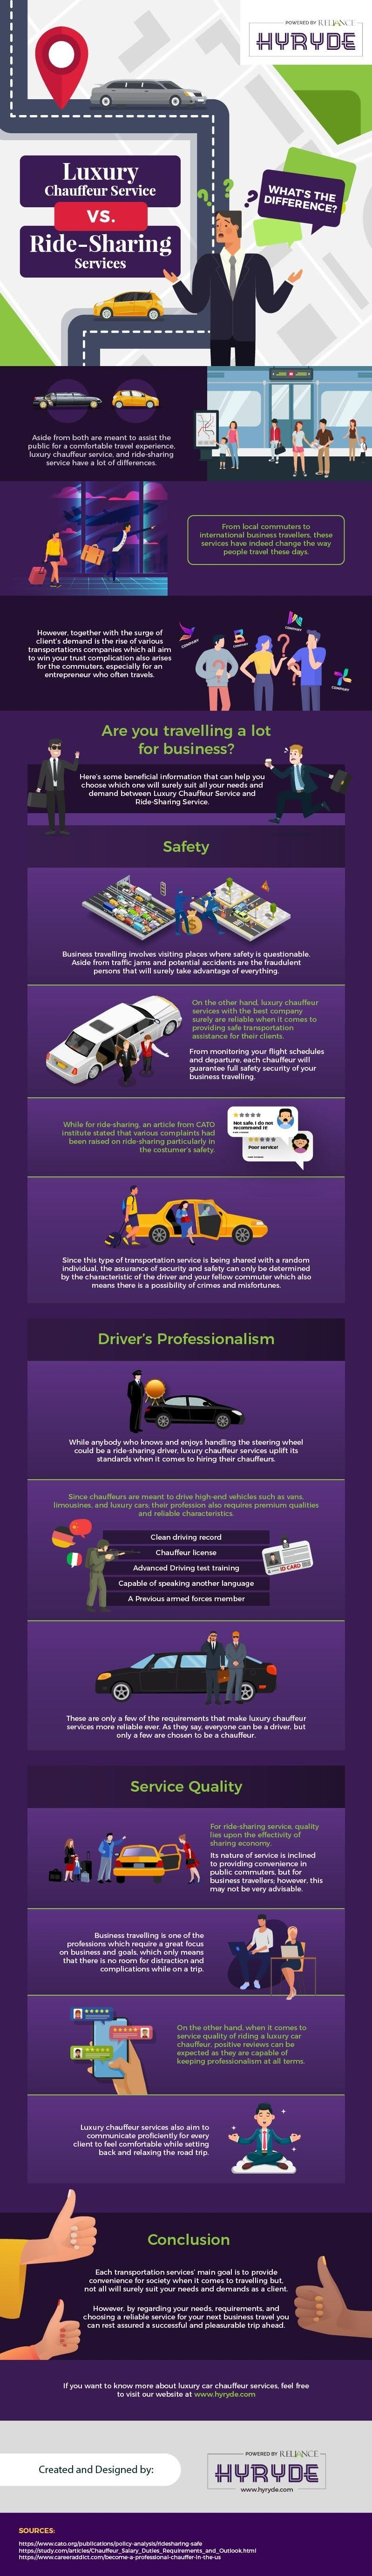 Luxury Chauffeur Service Vs. Ride-Sharing Services – What's the Difference? #infographic